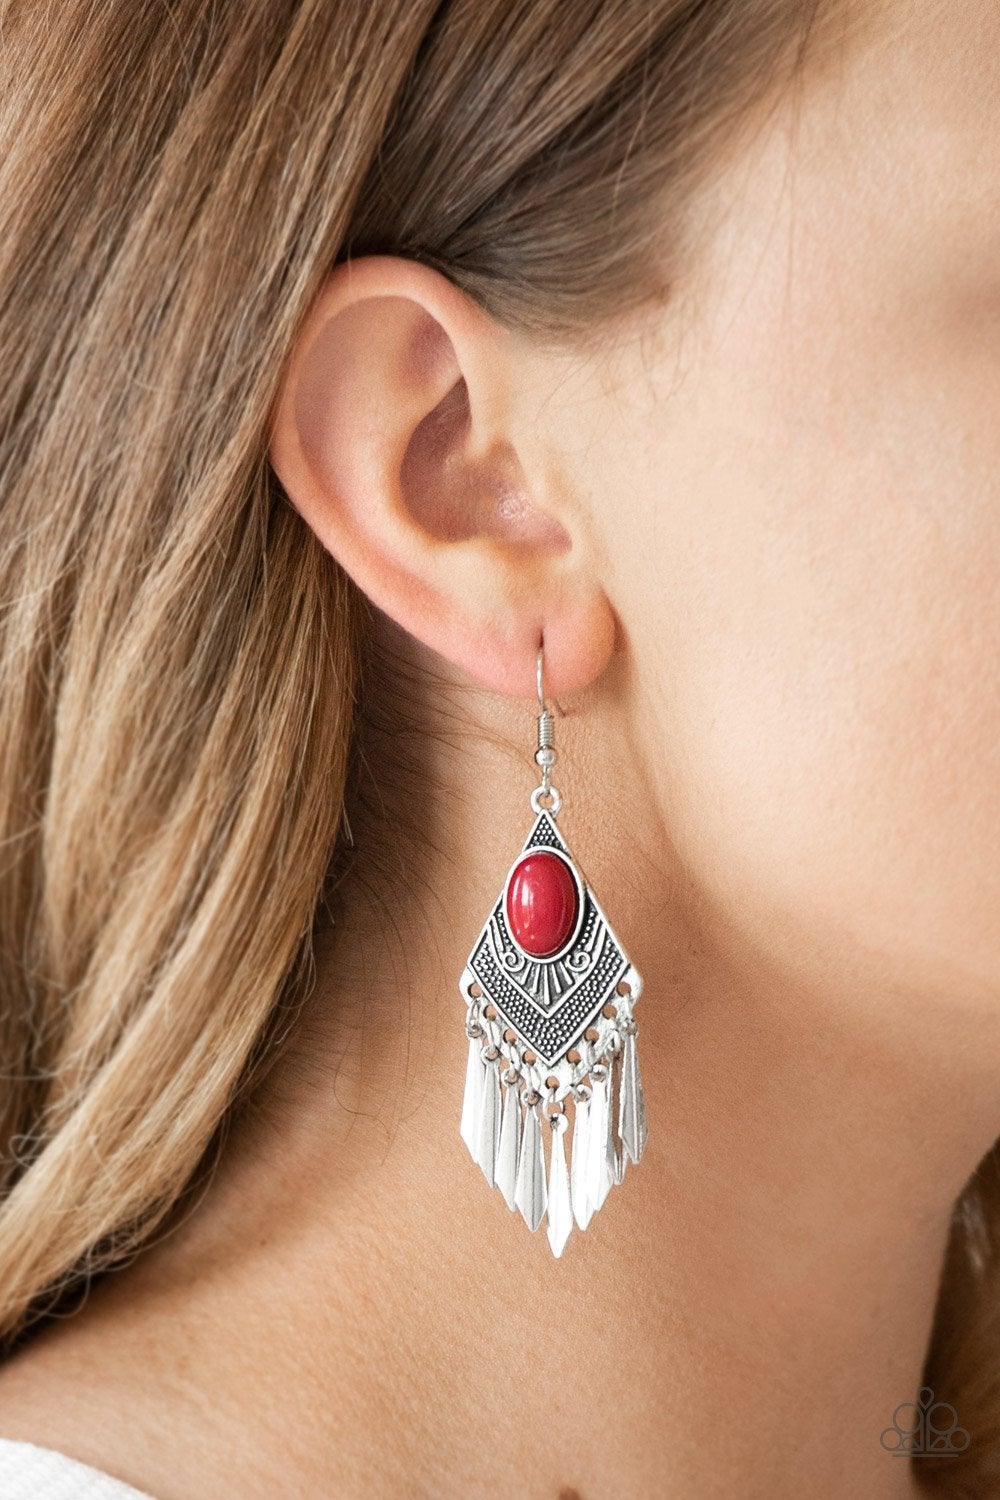 A polished red bead is pressed into a diamond shaped frame radiating with tribal inspired details. Flared silver bars swing from the bottom of the ornate lure, creating a shiny fringe. Earring attaches to a standard fishhook fitting.